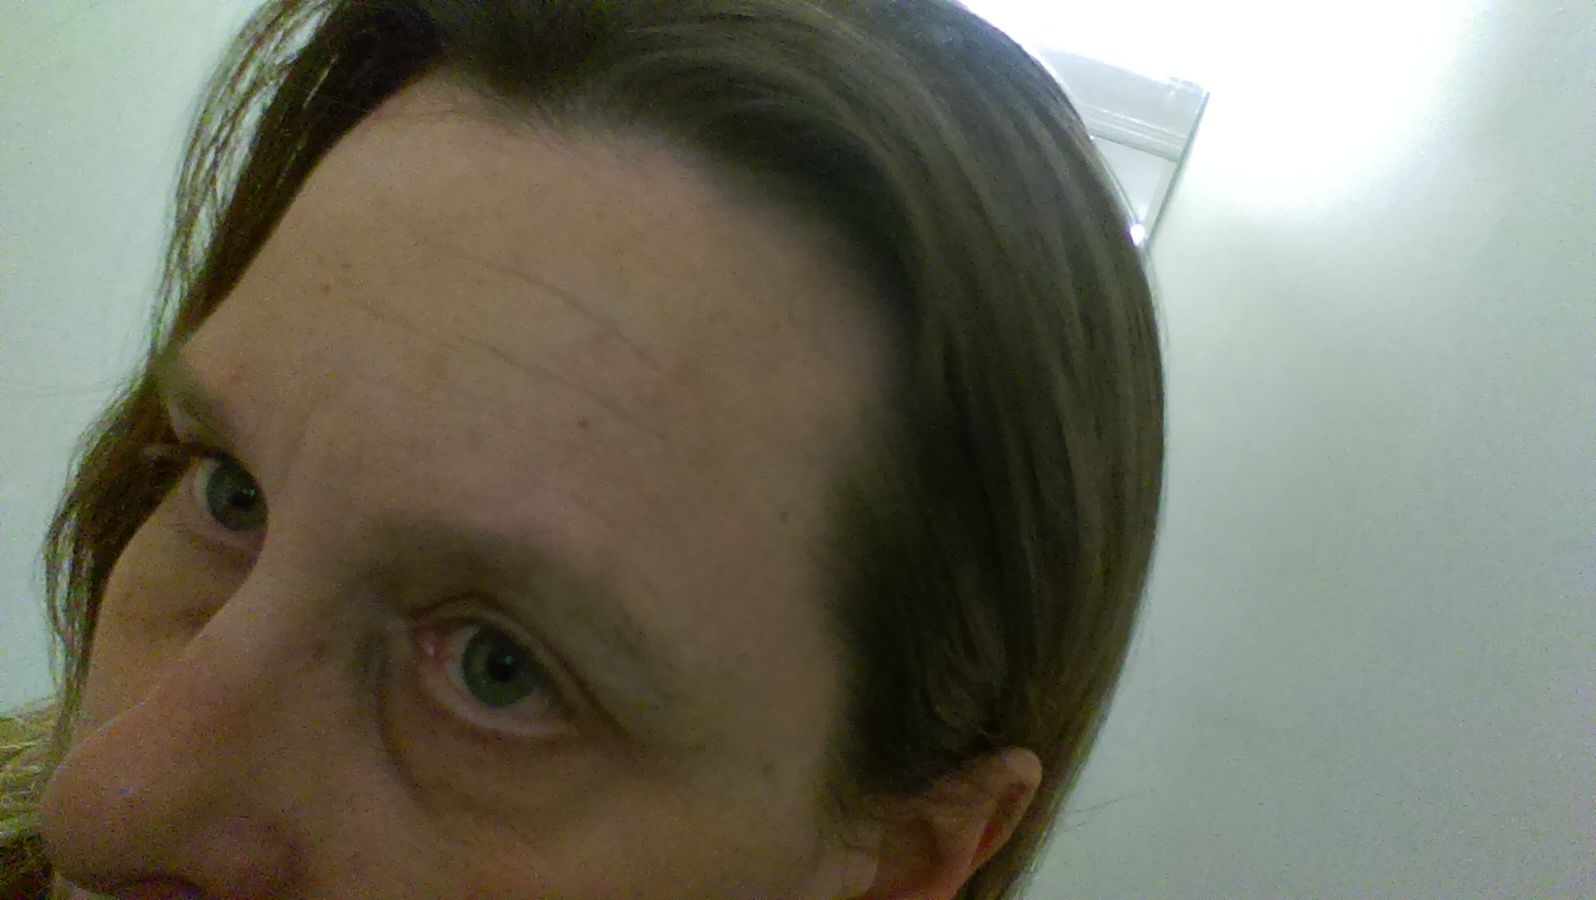 marks on forehead